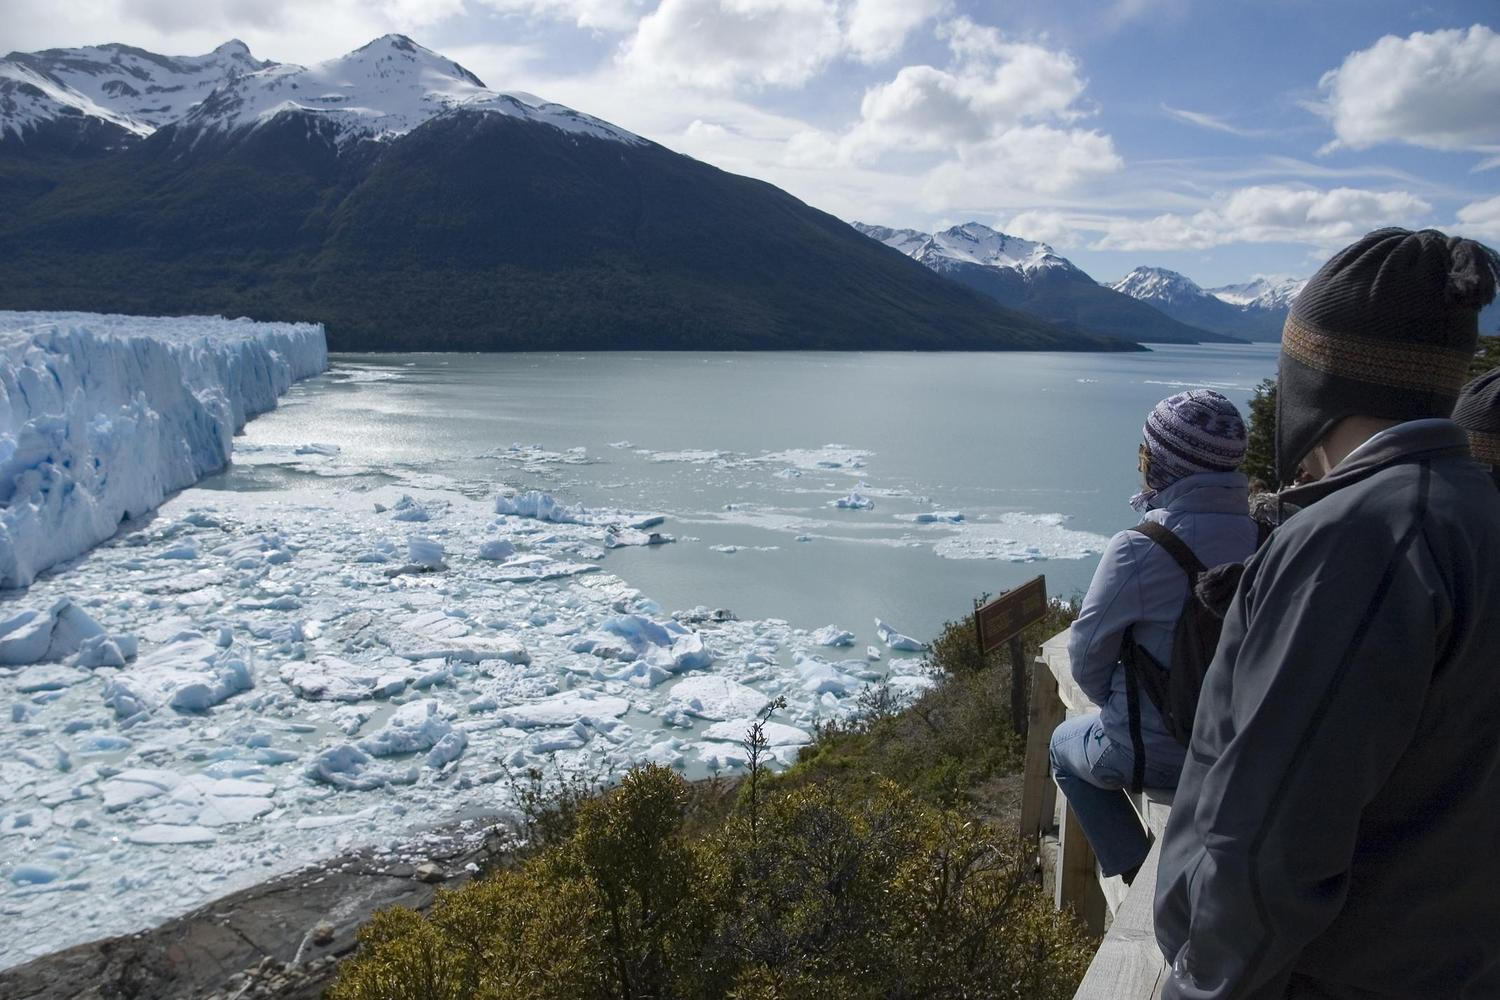 There are many vantage points for great views of Perito Moreno